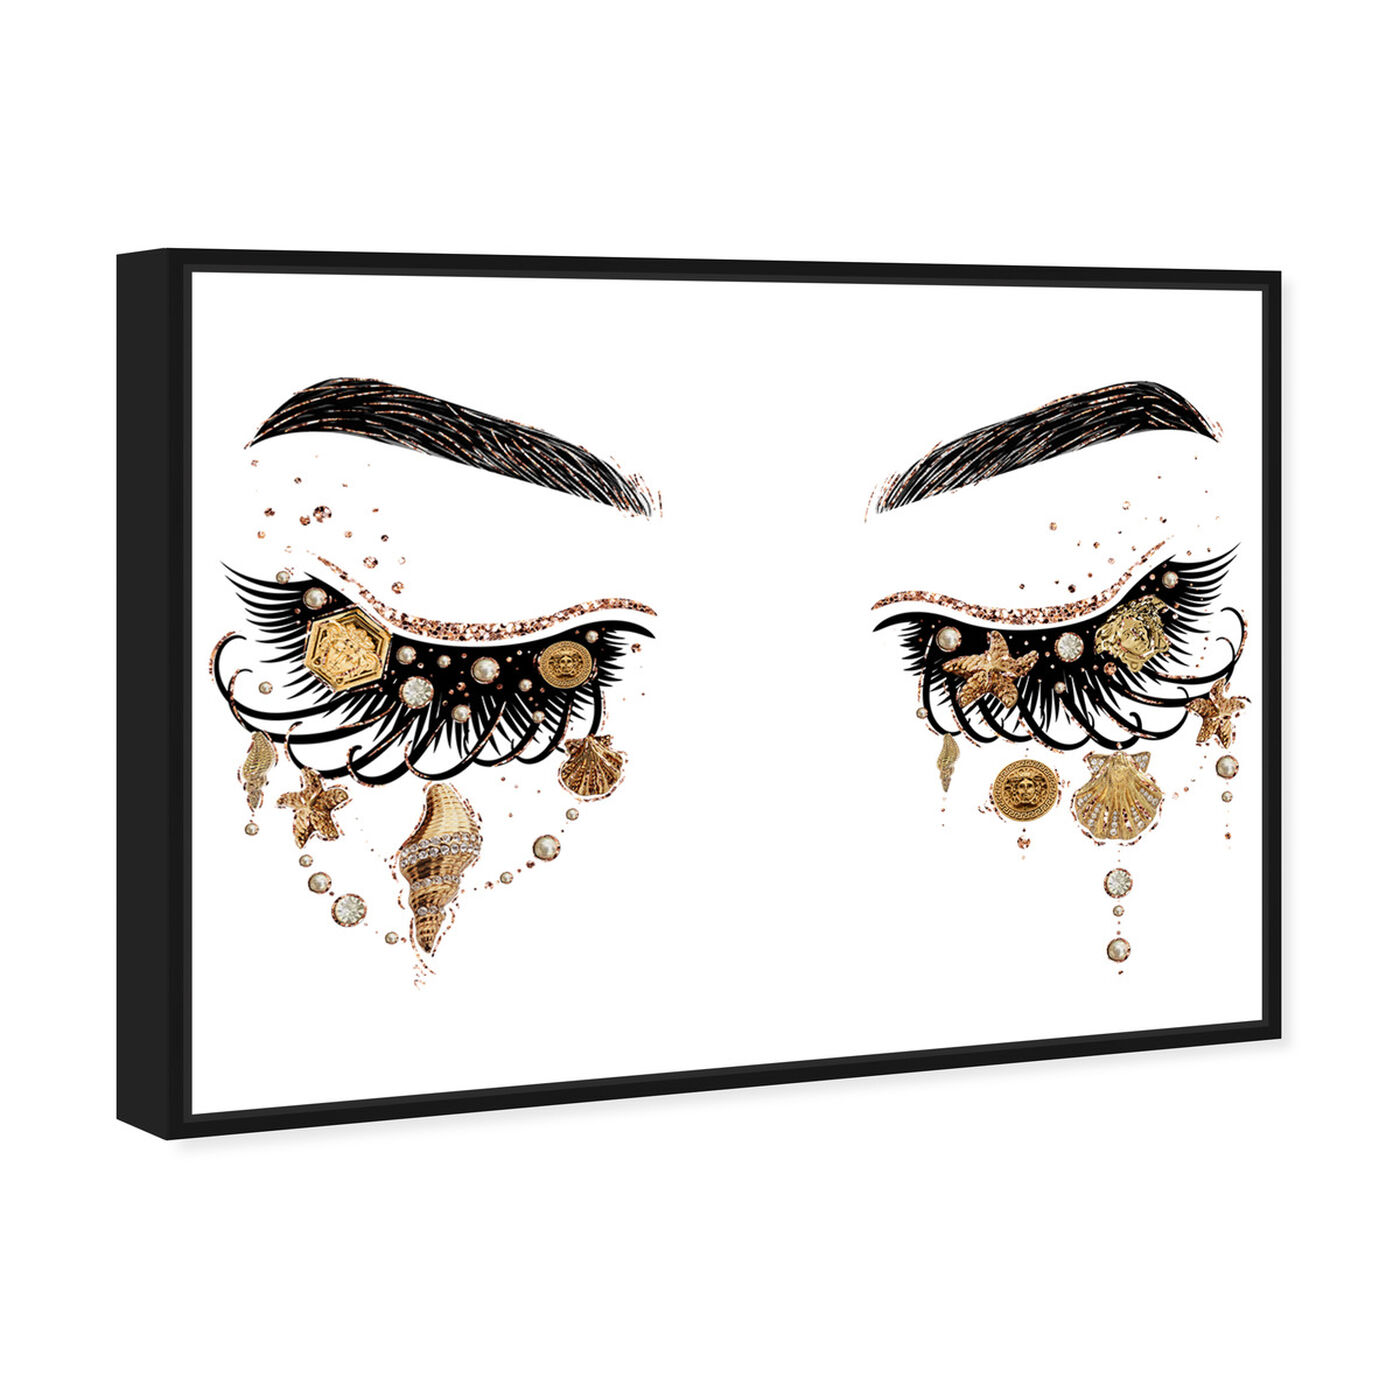 Angled view of Gianni Eyes and Treasures featuring fashion and glam and makeup art.